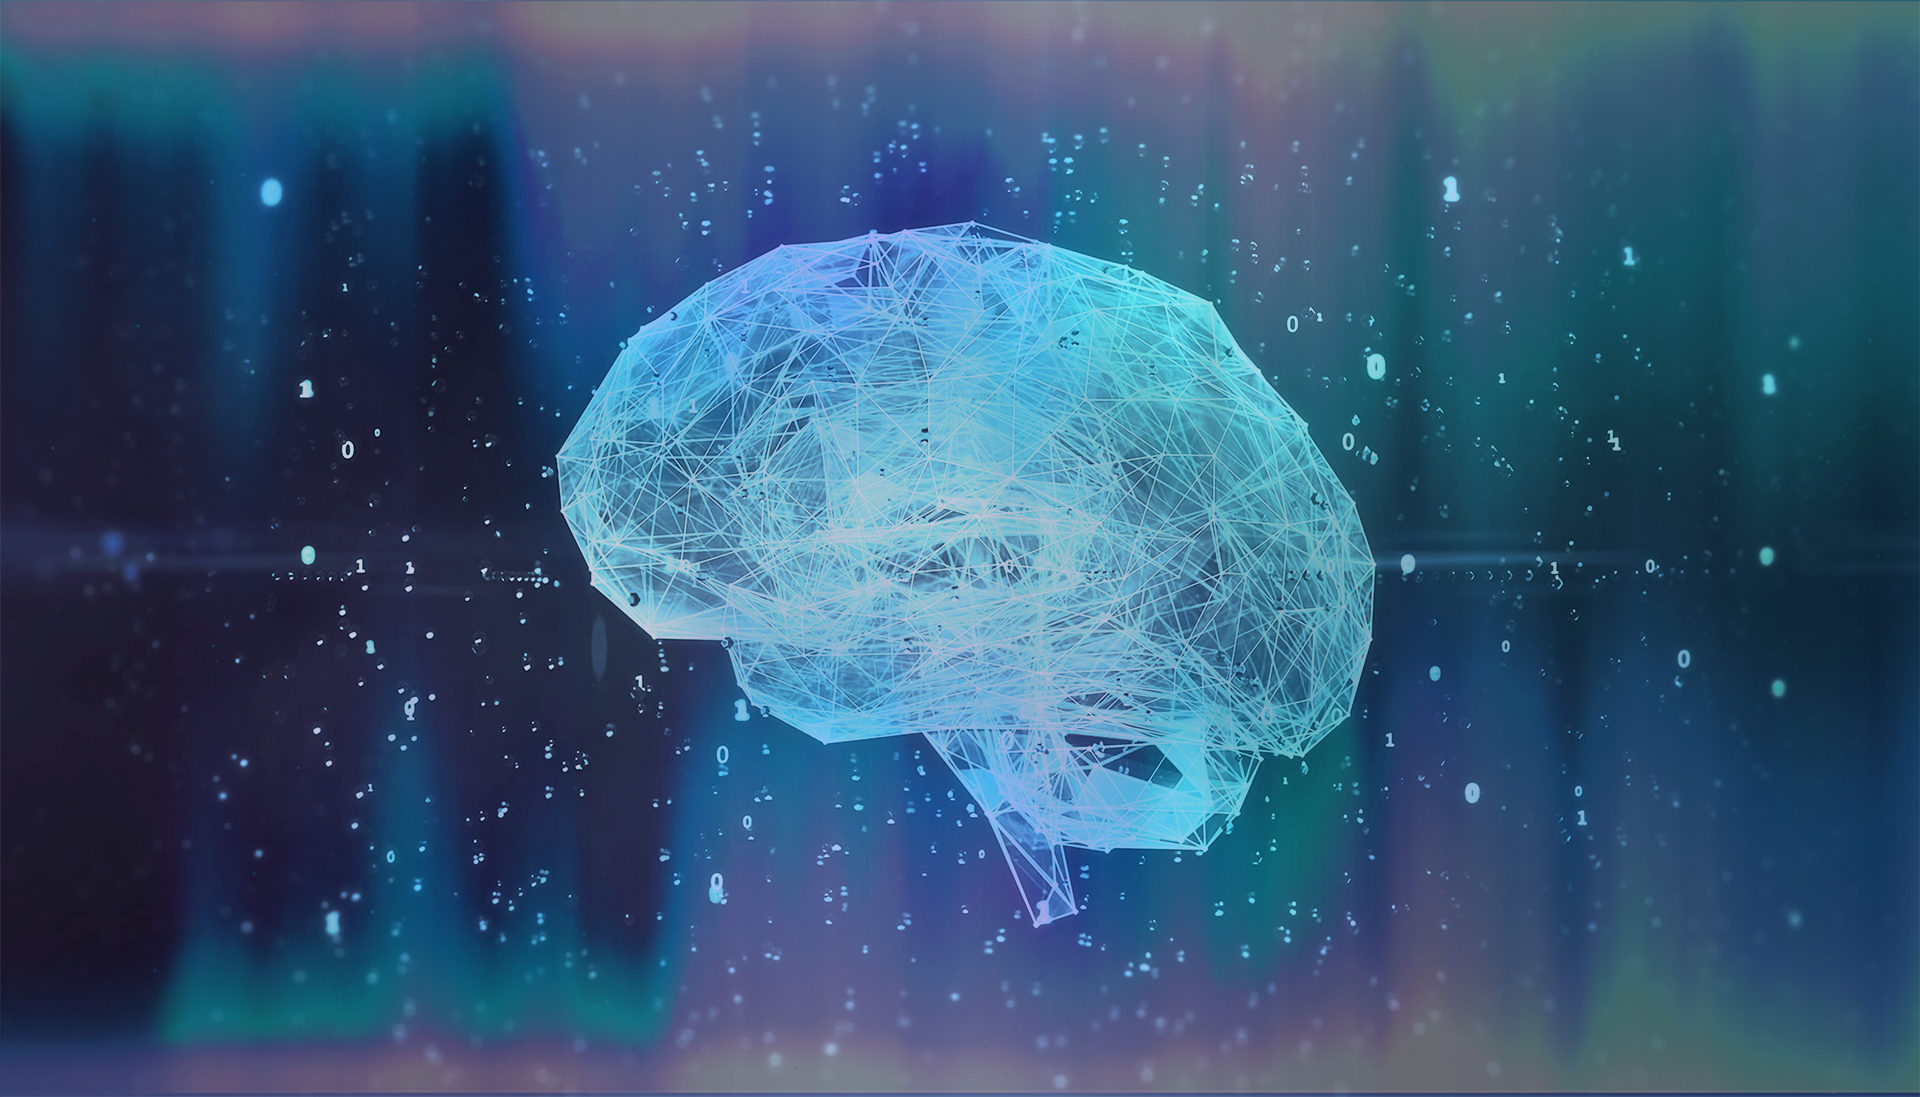 Image designed in photoshop representing a neural network and brain. The open source image can be found for free on Pixabay